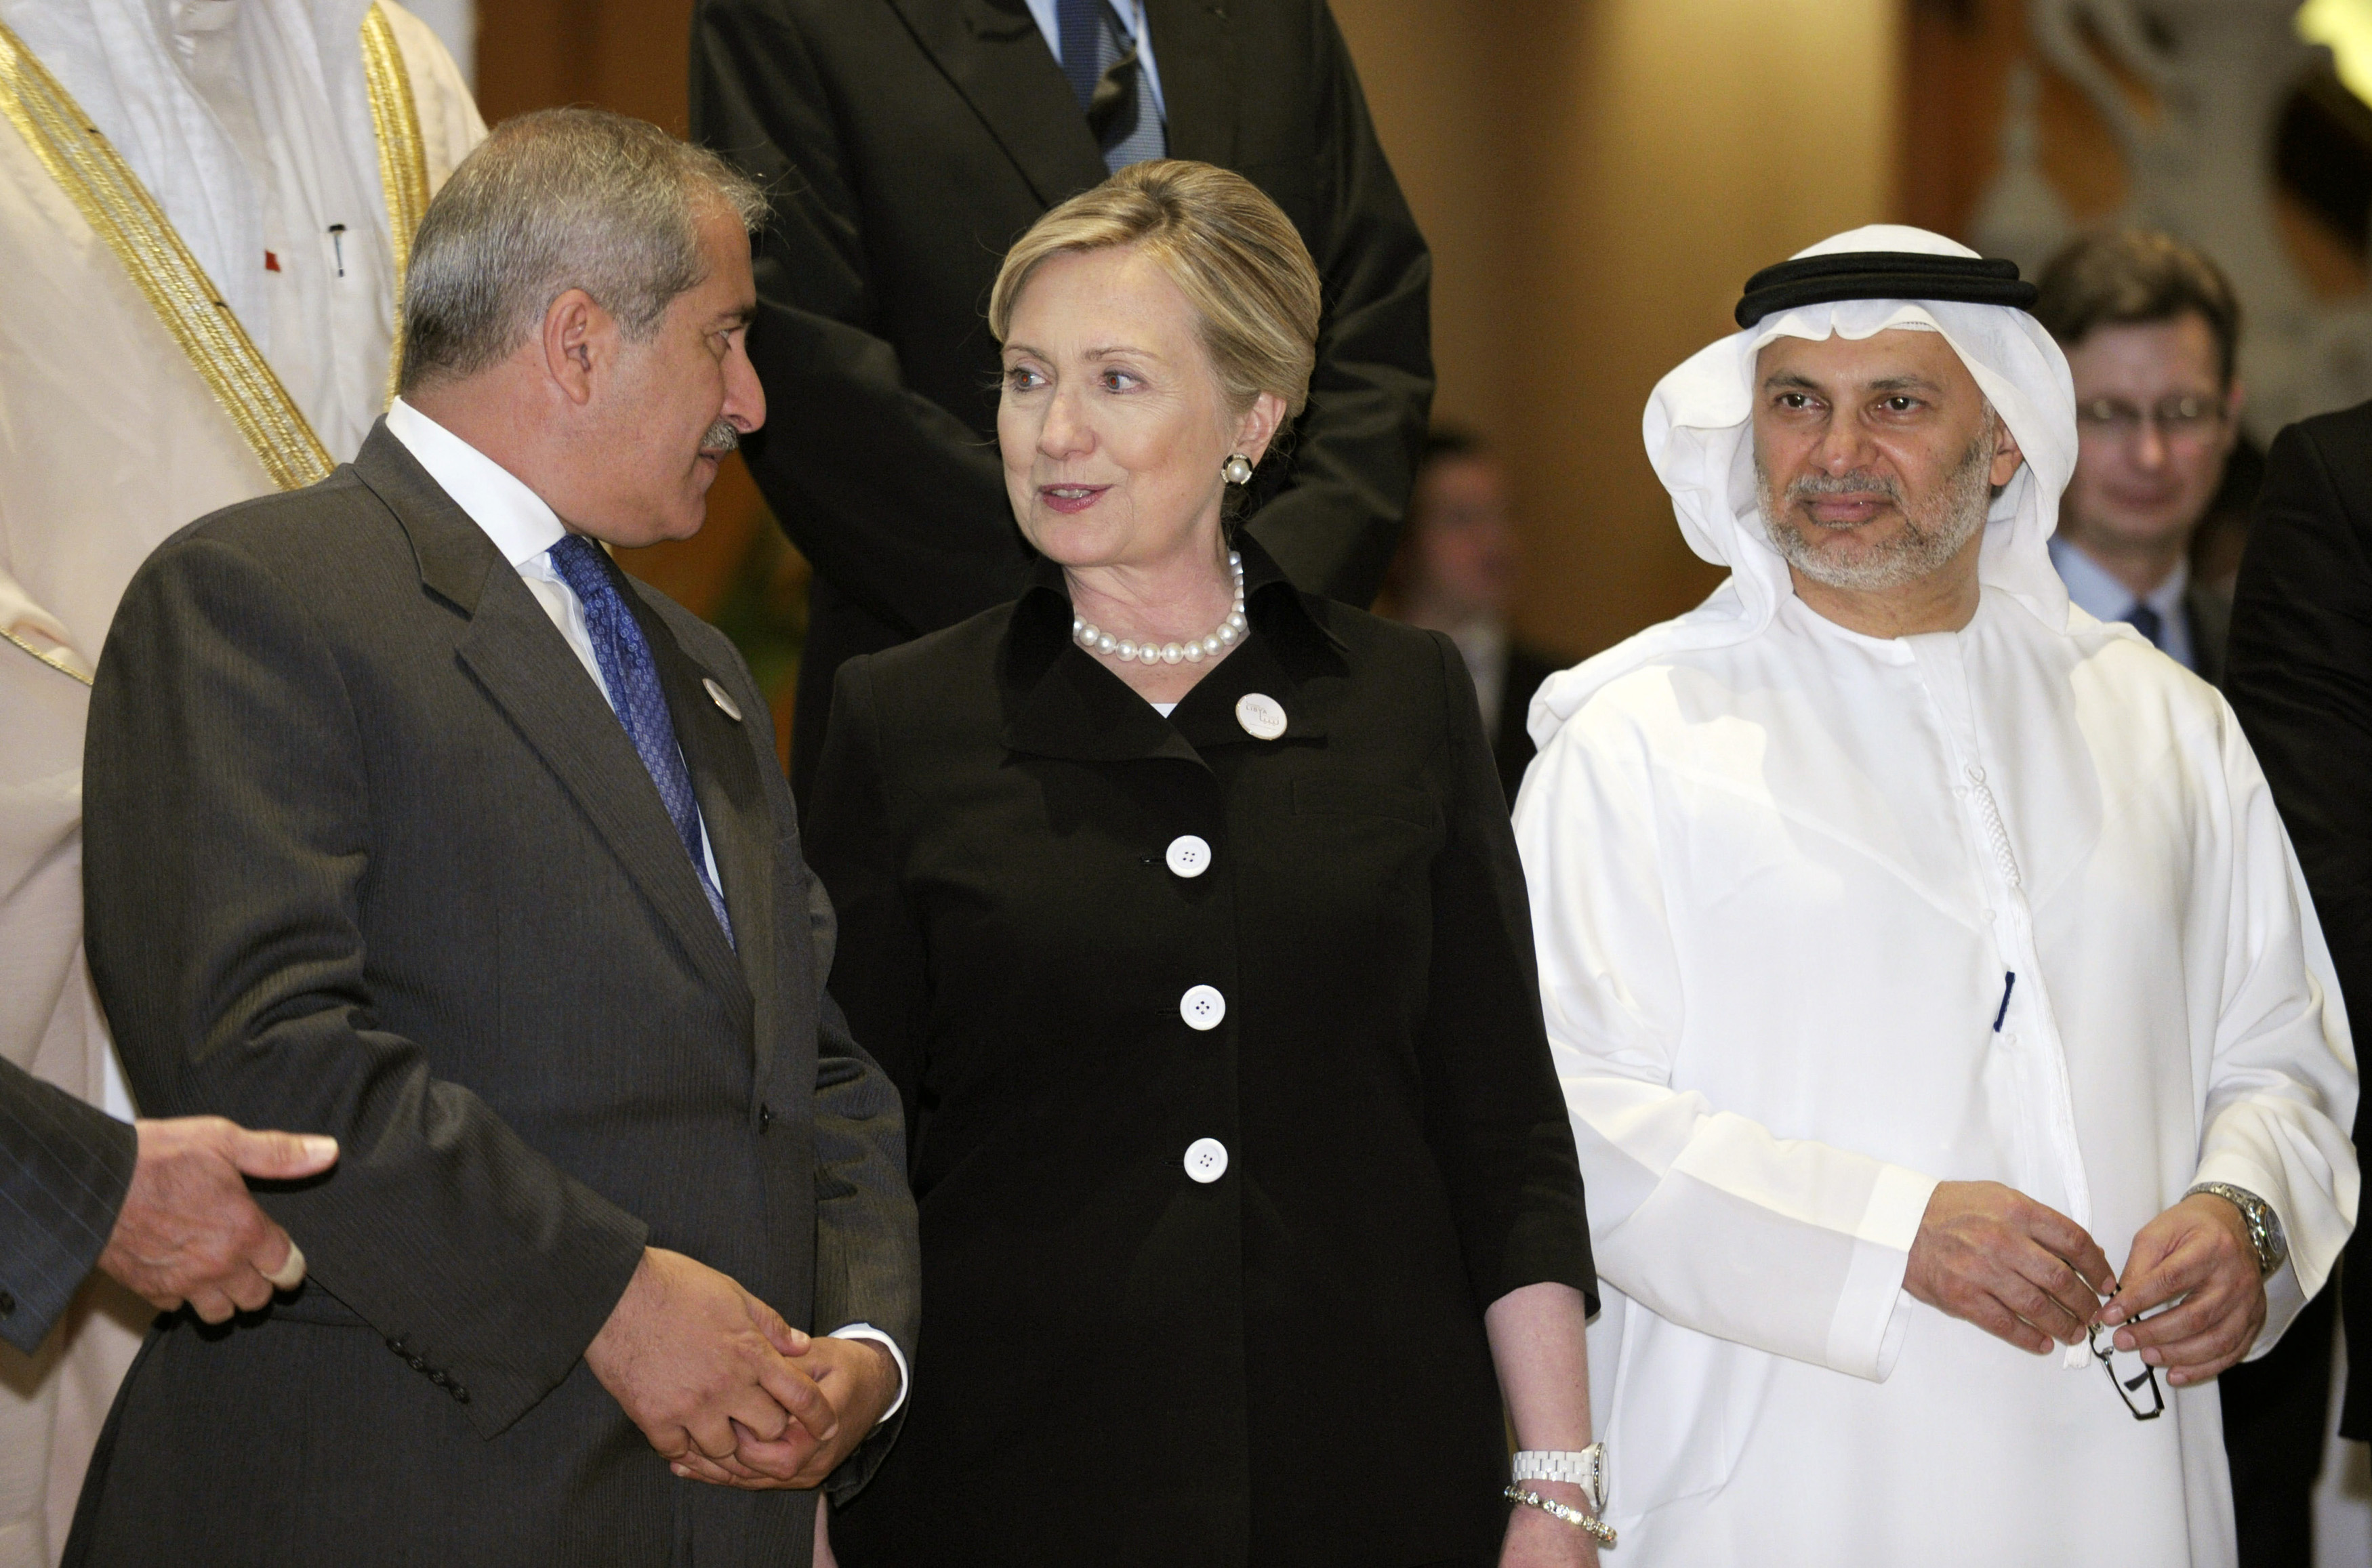 U.S. Secretary of State Hillary Rodham Clinton (C) speaks with Jordan's Foreign Minister Nasser Judeh (L) and United Arab Emirates Minister of State for Foreign Affairs Anwar Gargash as they participate in the Libya Contact Group family photo at the Emirates Palace Hotel in Abu Dhabi